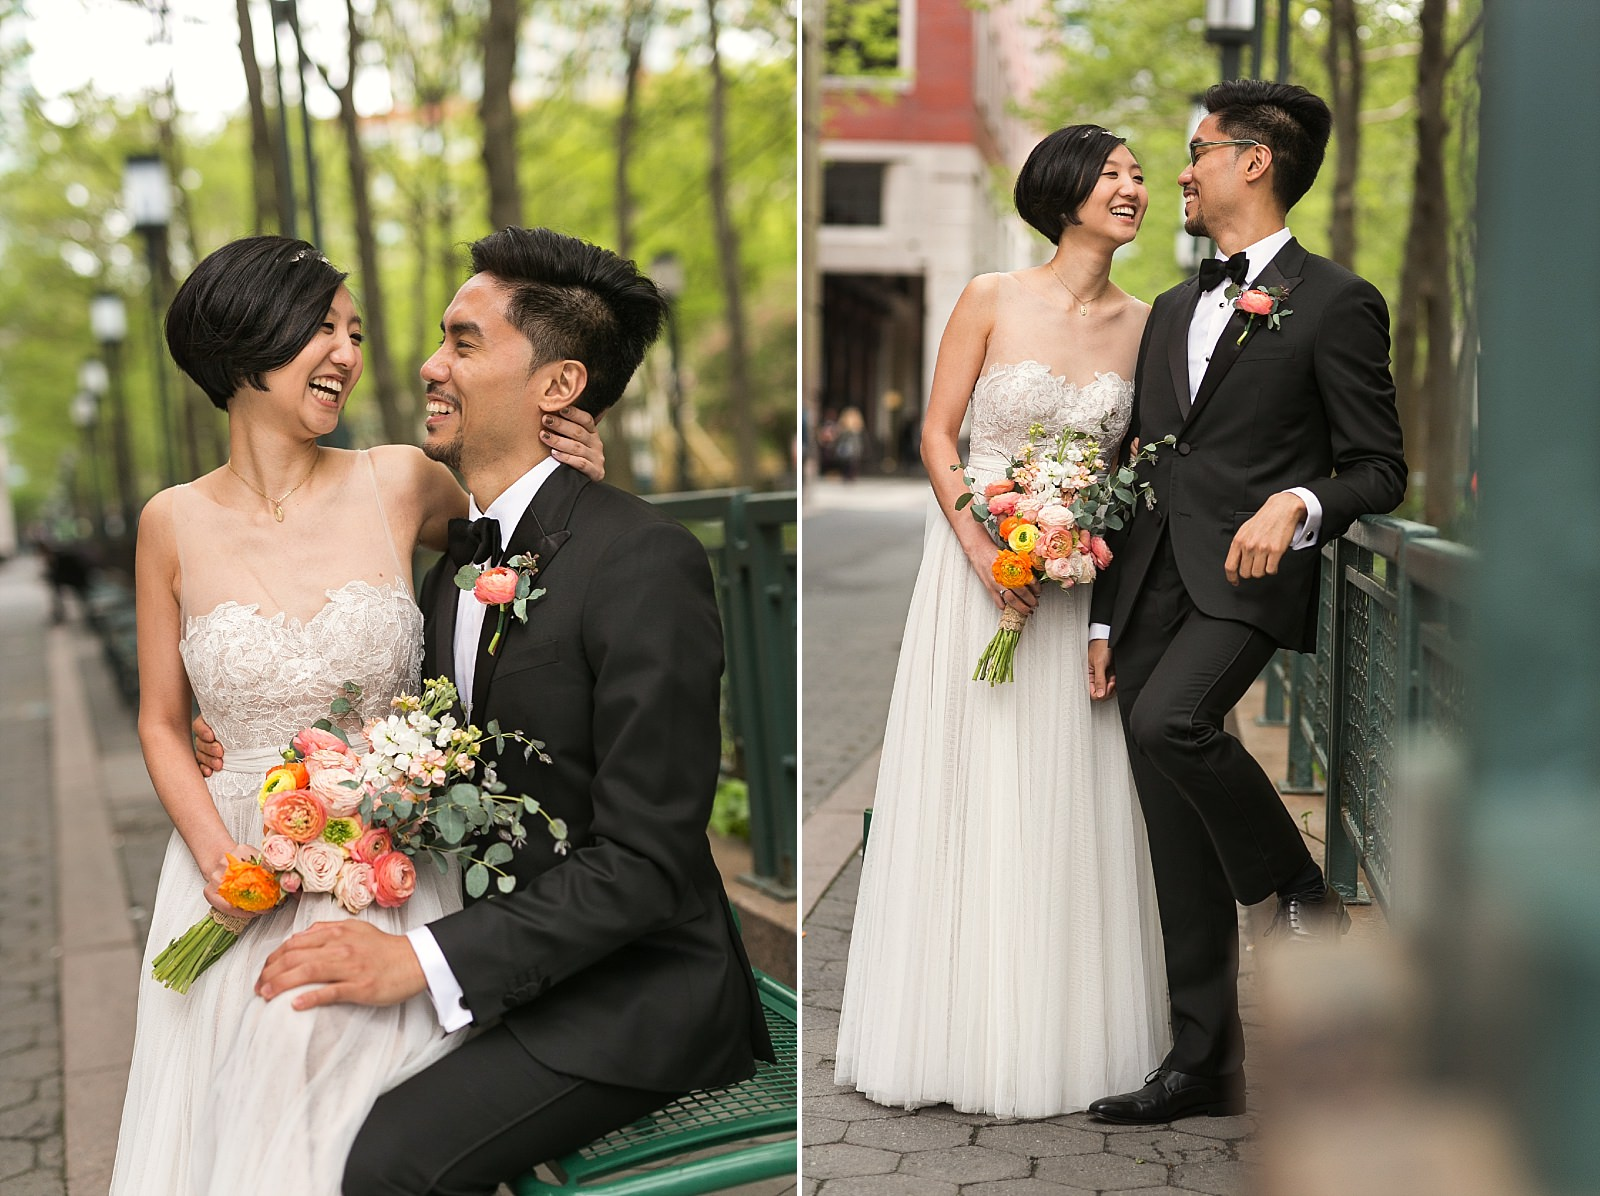 NYC_Wedding_Photographer_JeNi_Wed_33.jpg